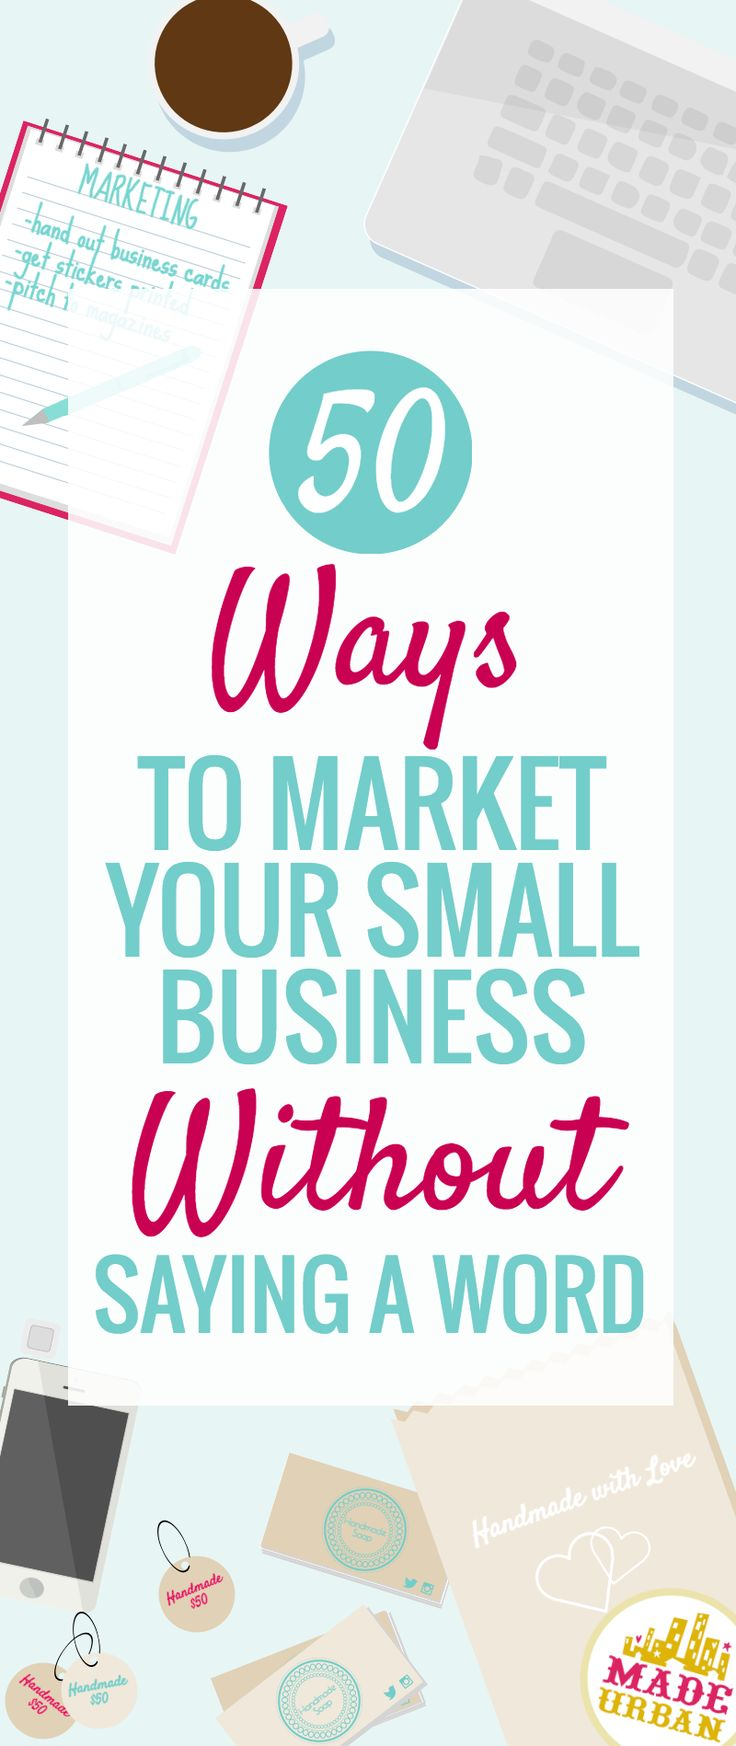 Imagination clipart craft fair Pinterest Business New speaking your